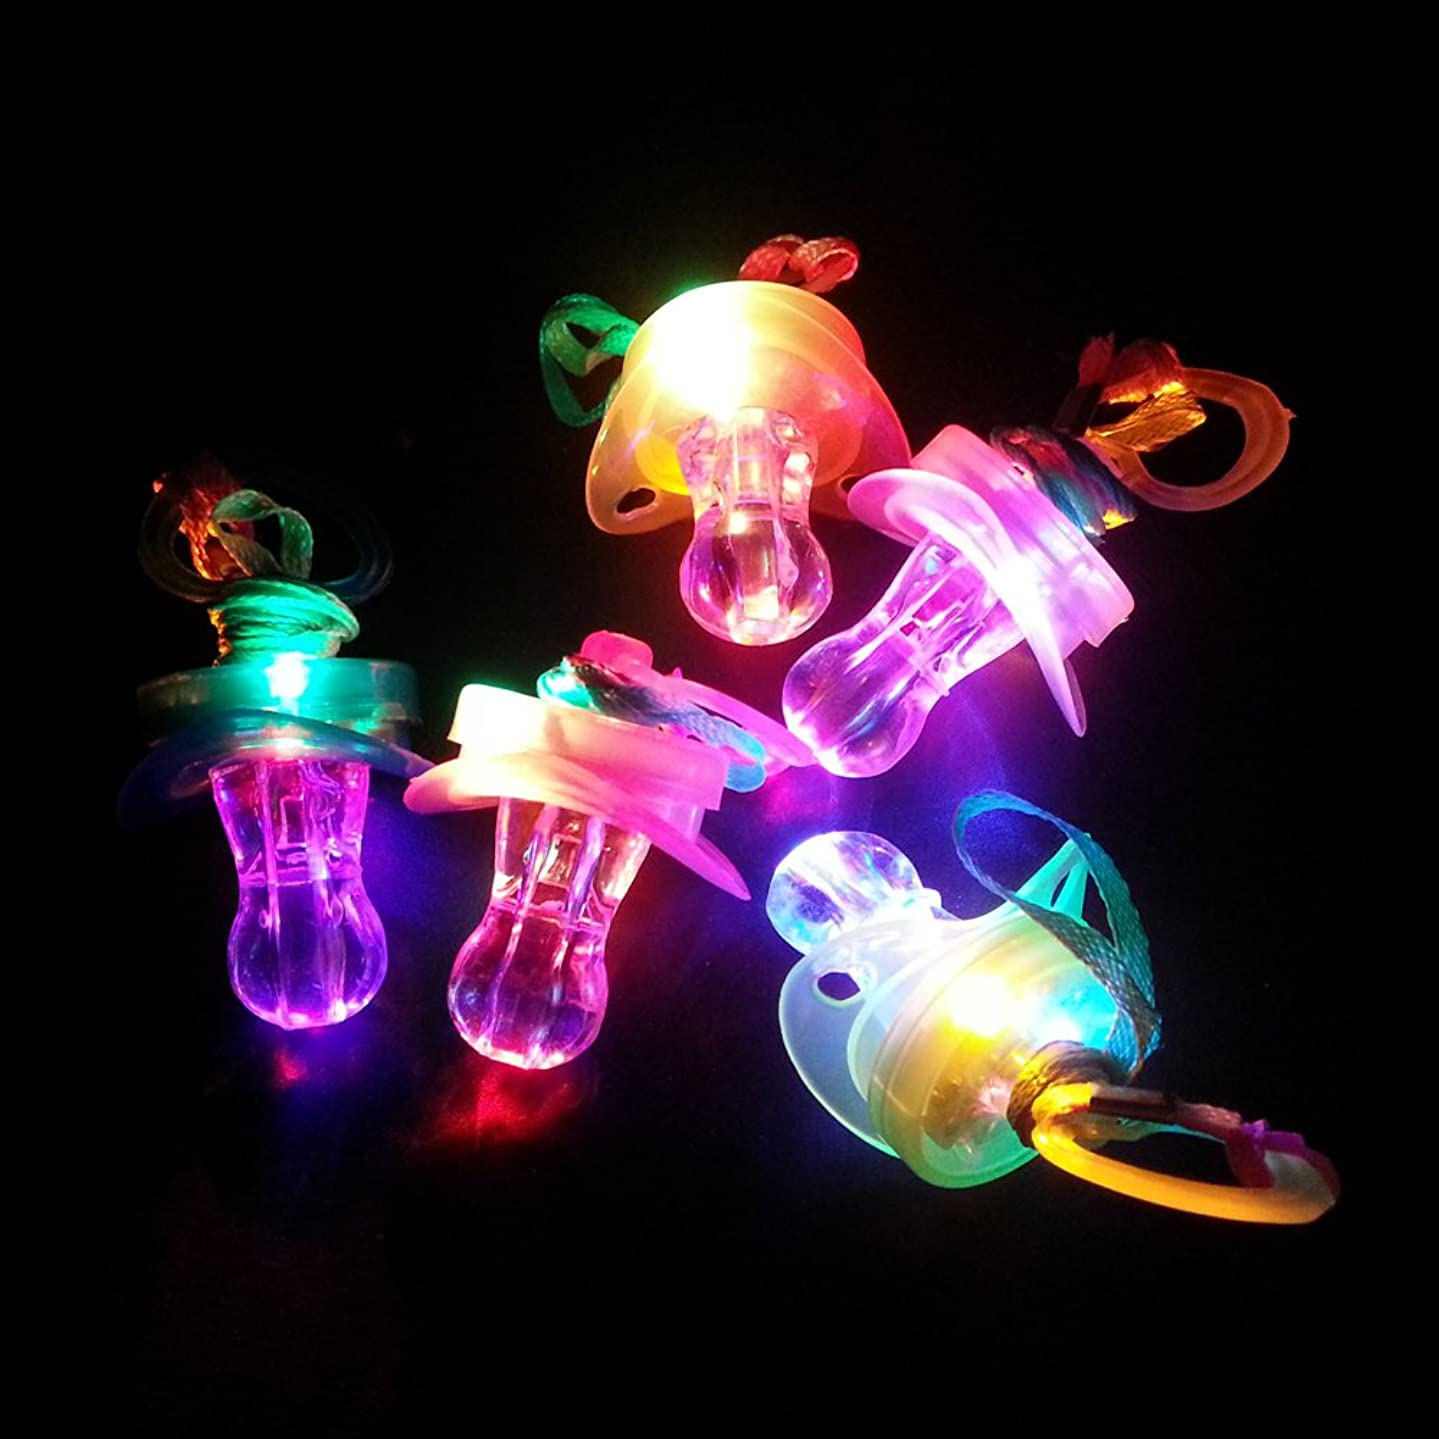 12 Pieces Light up Blinking Joke Pacifier Toy LED Pacifier Whistle Suitable for Activities in KTV and Bar Concert Tools for Cheering for Sports Events